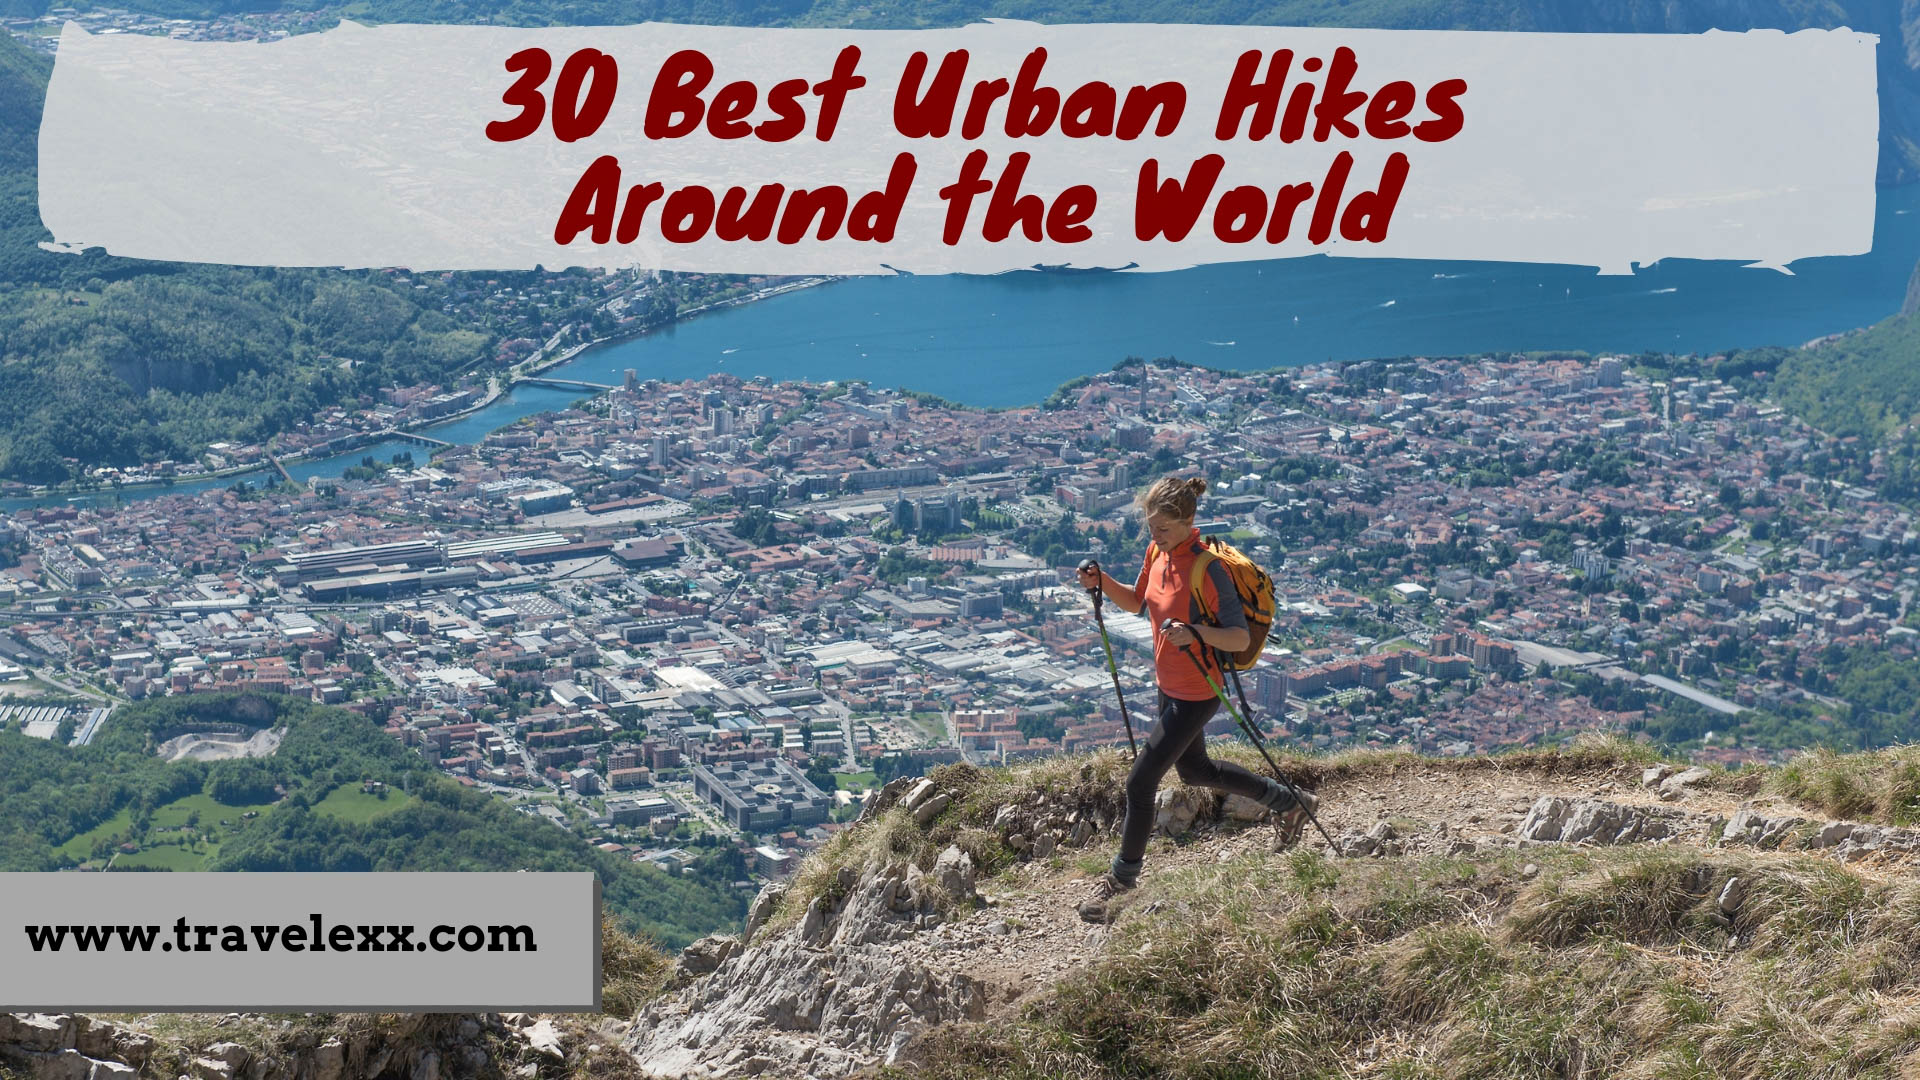 30 Best Urban Hikes Around the World